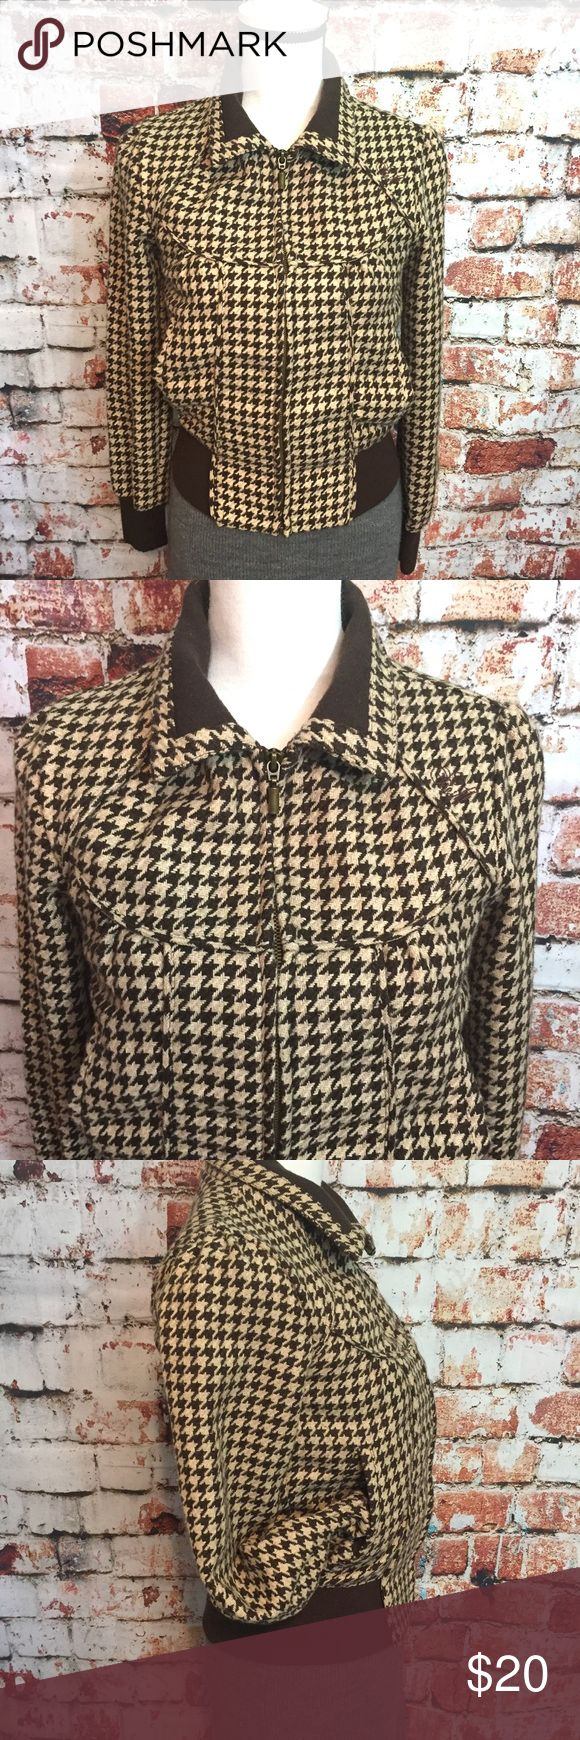 ••O'NEILL•• Brown & Beige houndstooth coat O'Neill brown & beige houndstooth bomber style jacket. Super stylish and super adorable. Size Medium. O'Neill Jackets & Coats